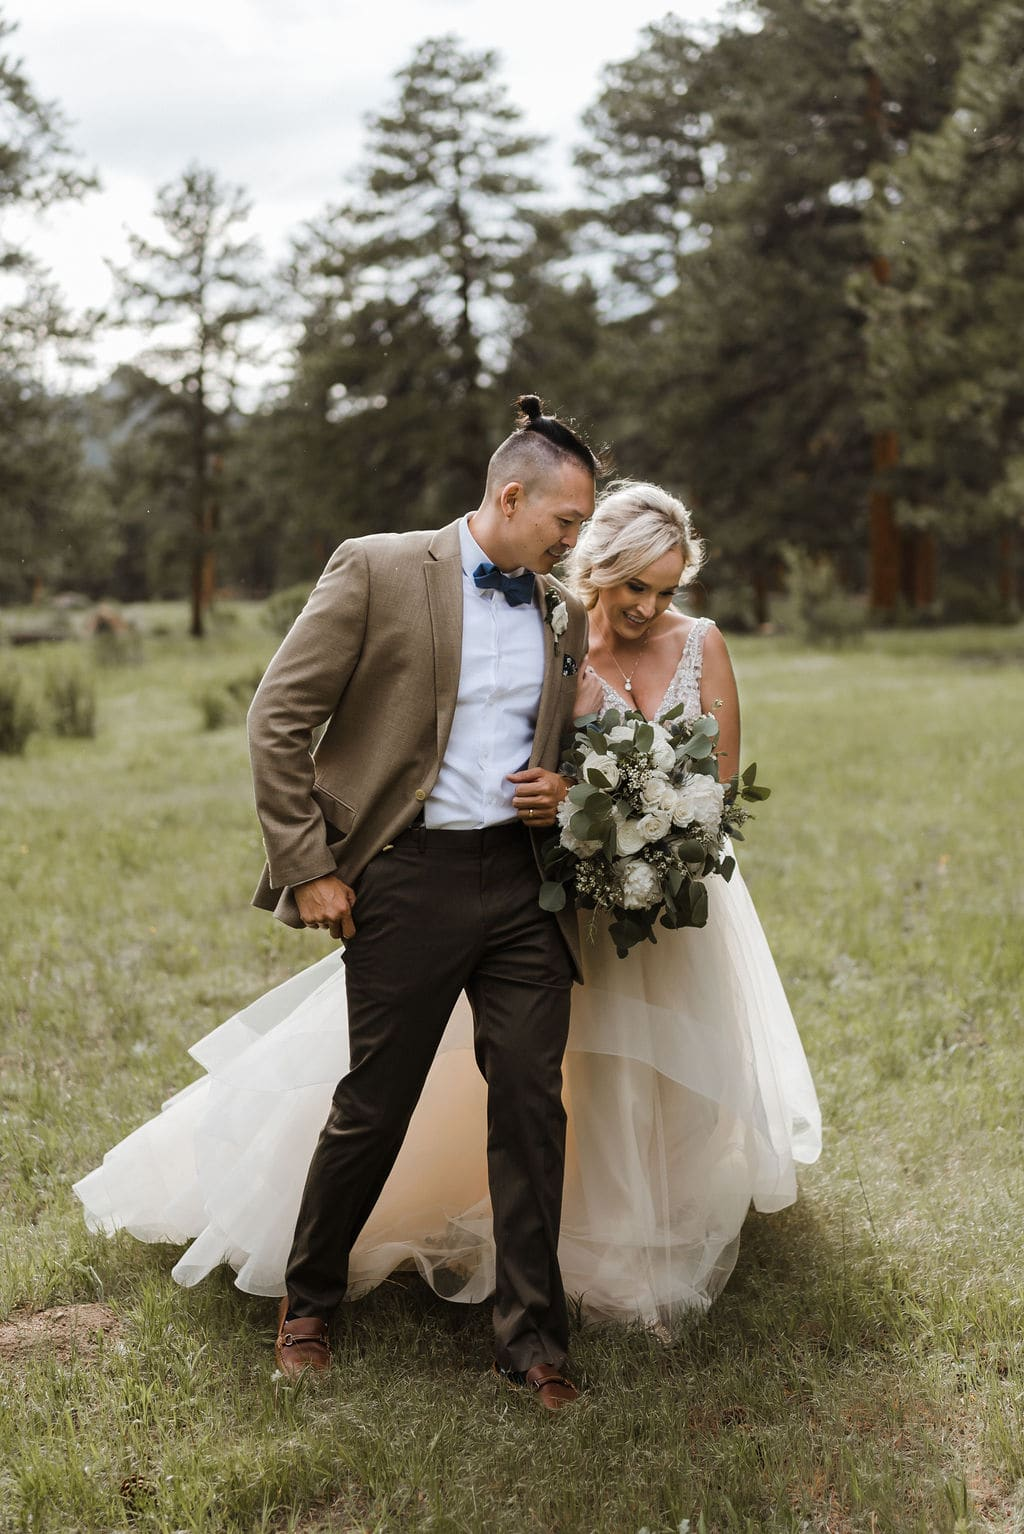 Della Terra Bride and Groom Portraits